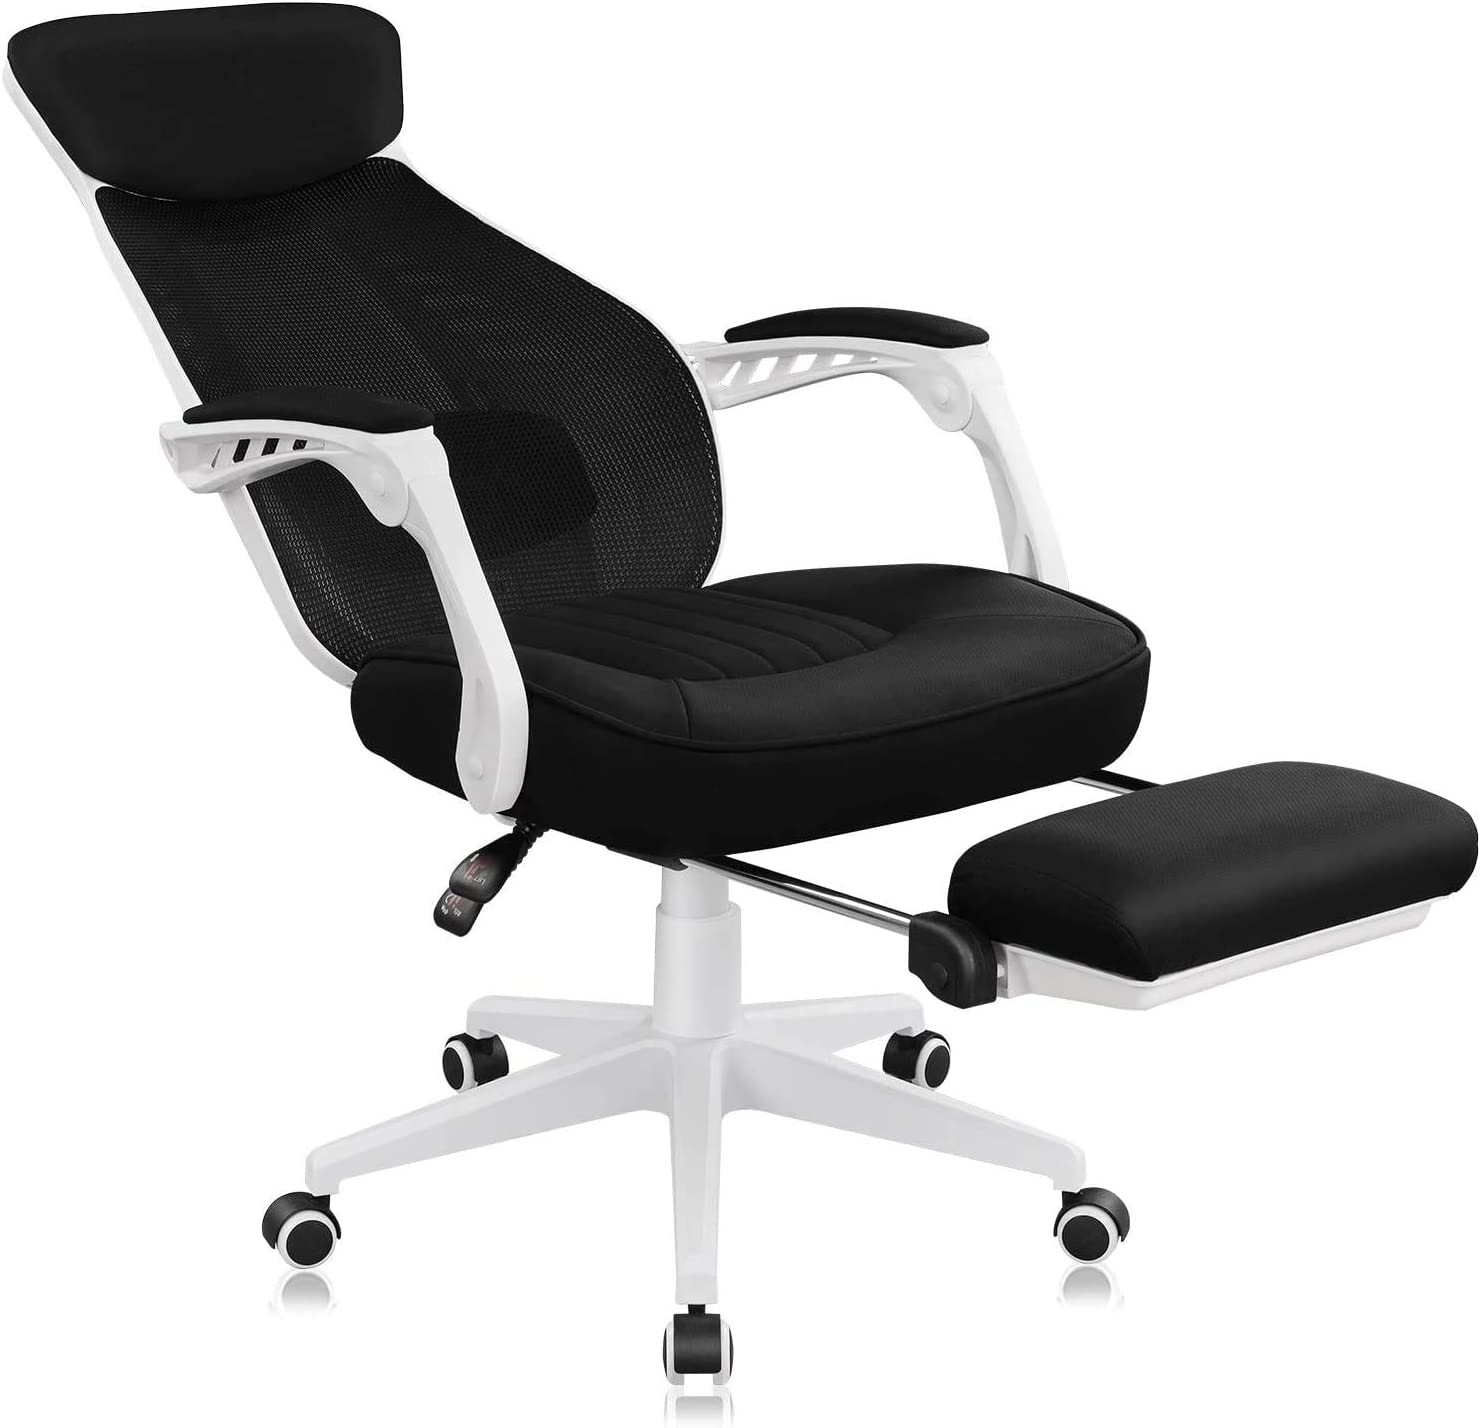 DEVAISE Mesh Recliner Office Chair